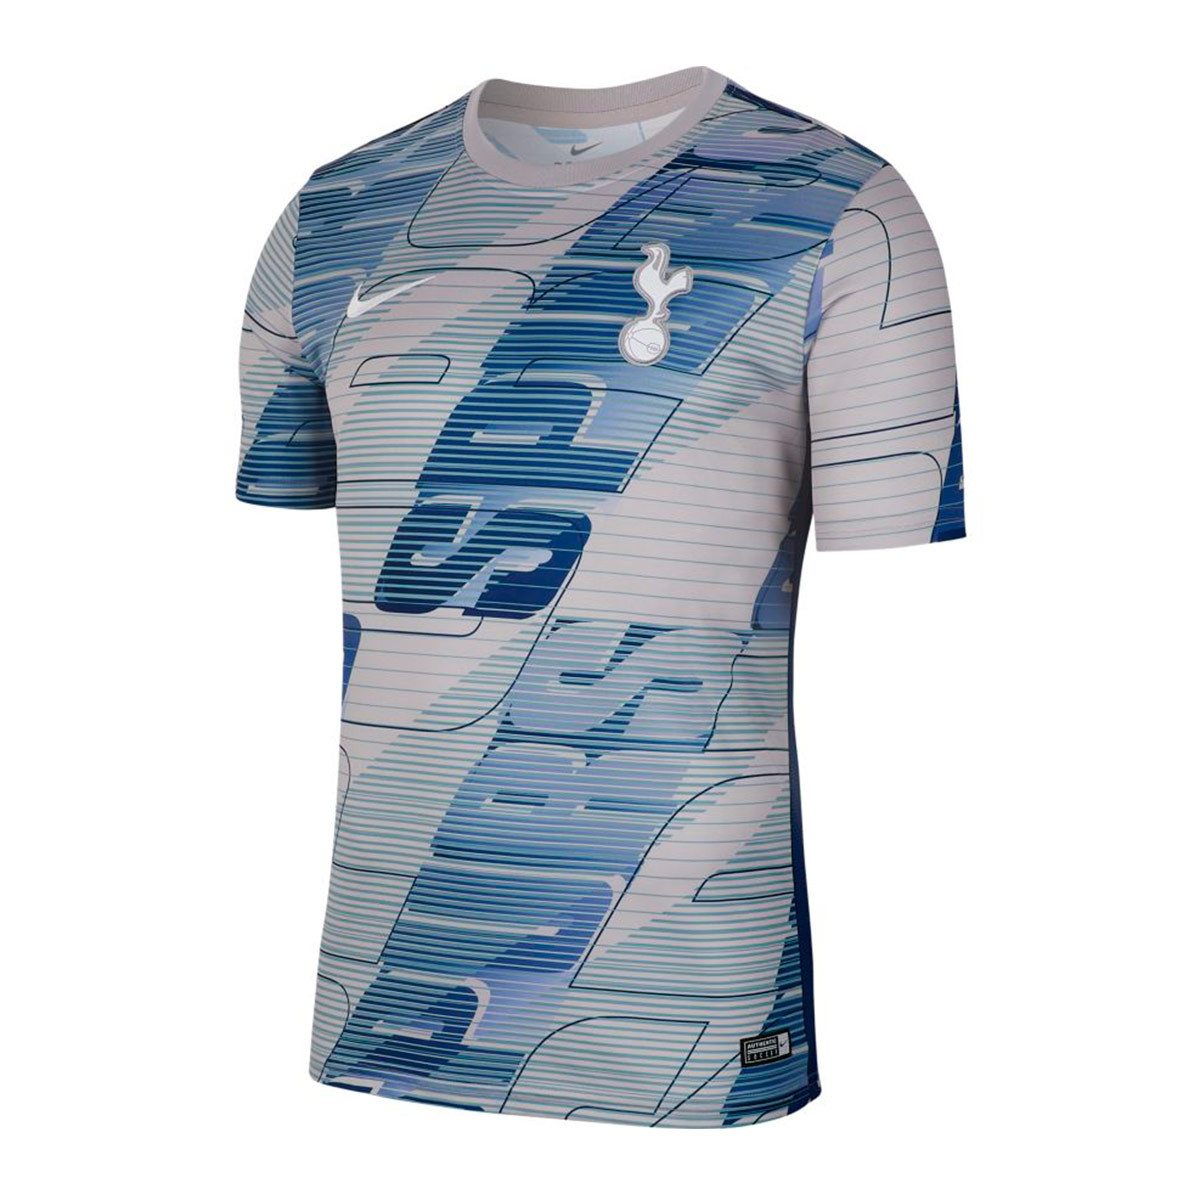 the latest ade2a d018d Camiseta Tottenham Hotspur Dry 2019-2020 Atmosphere grey-Binary blue-White